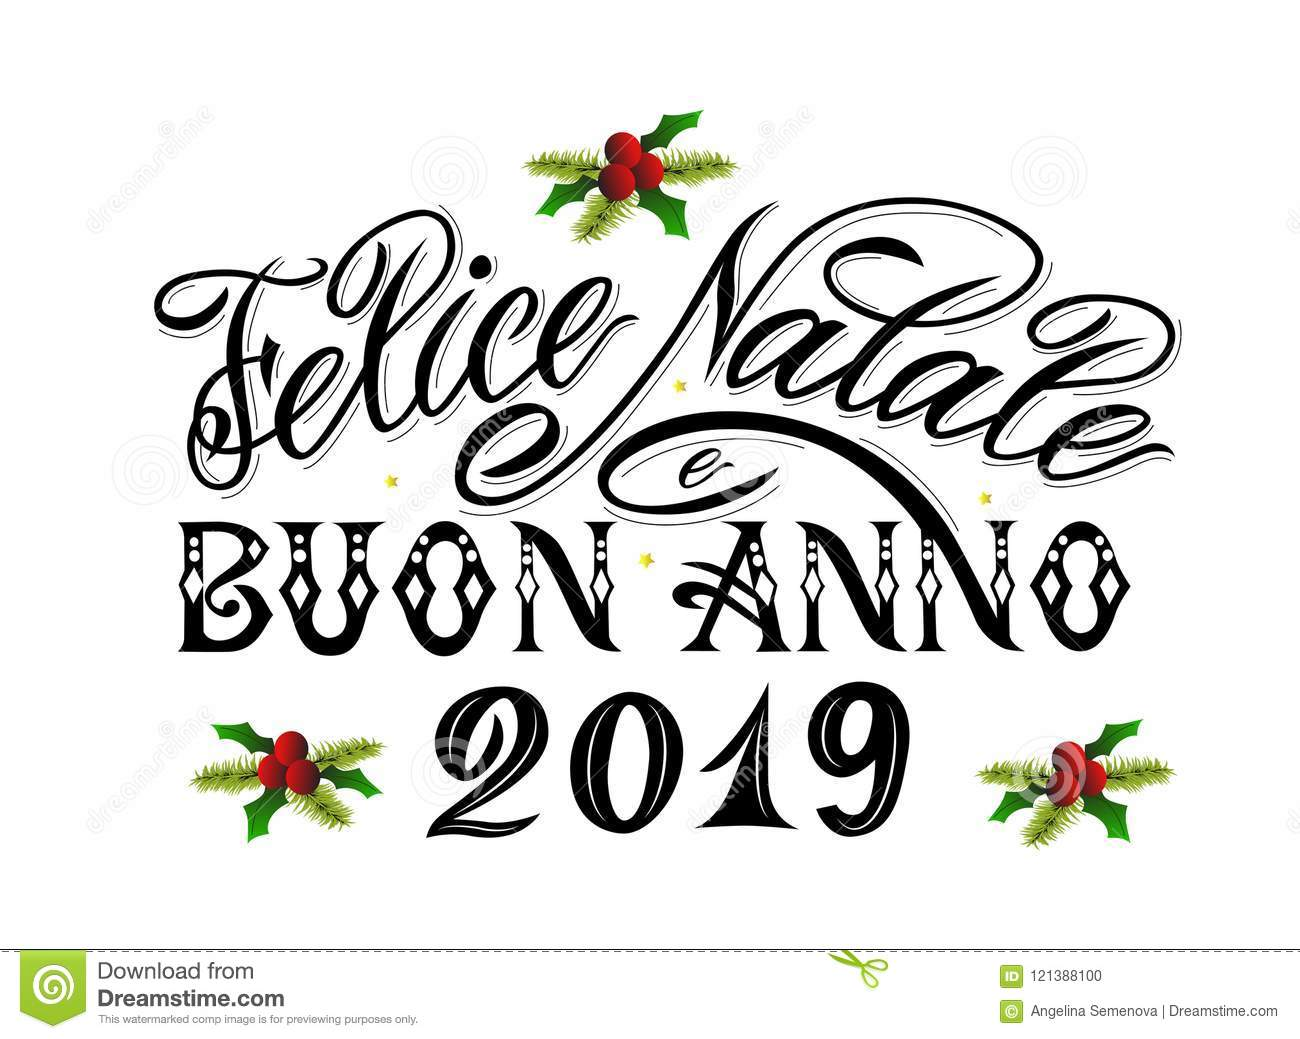 Merry christmas and happy new year 2019 greetings text in italian merry christmas and happy new year 2019 greetings text in italian language m4hsunfo